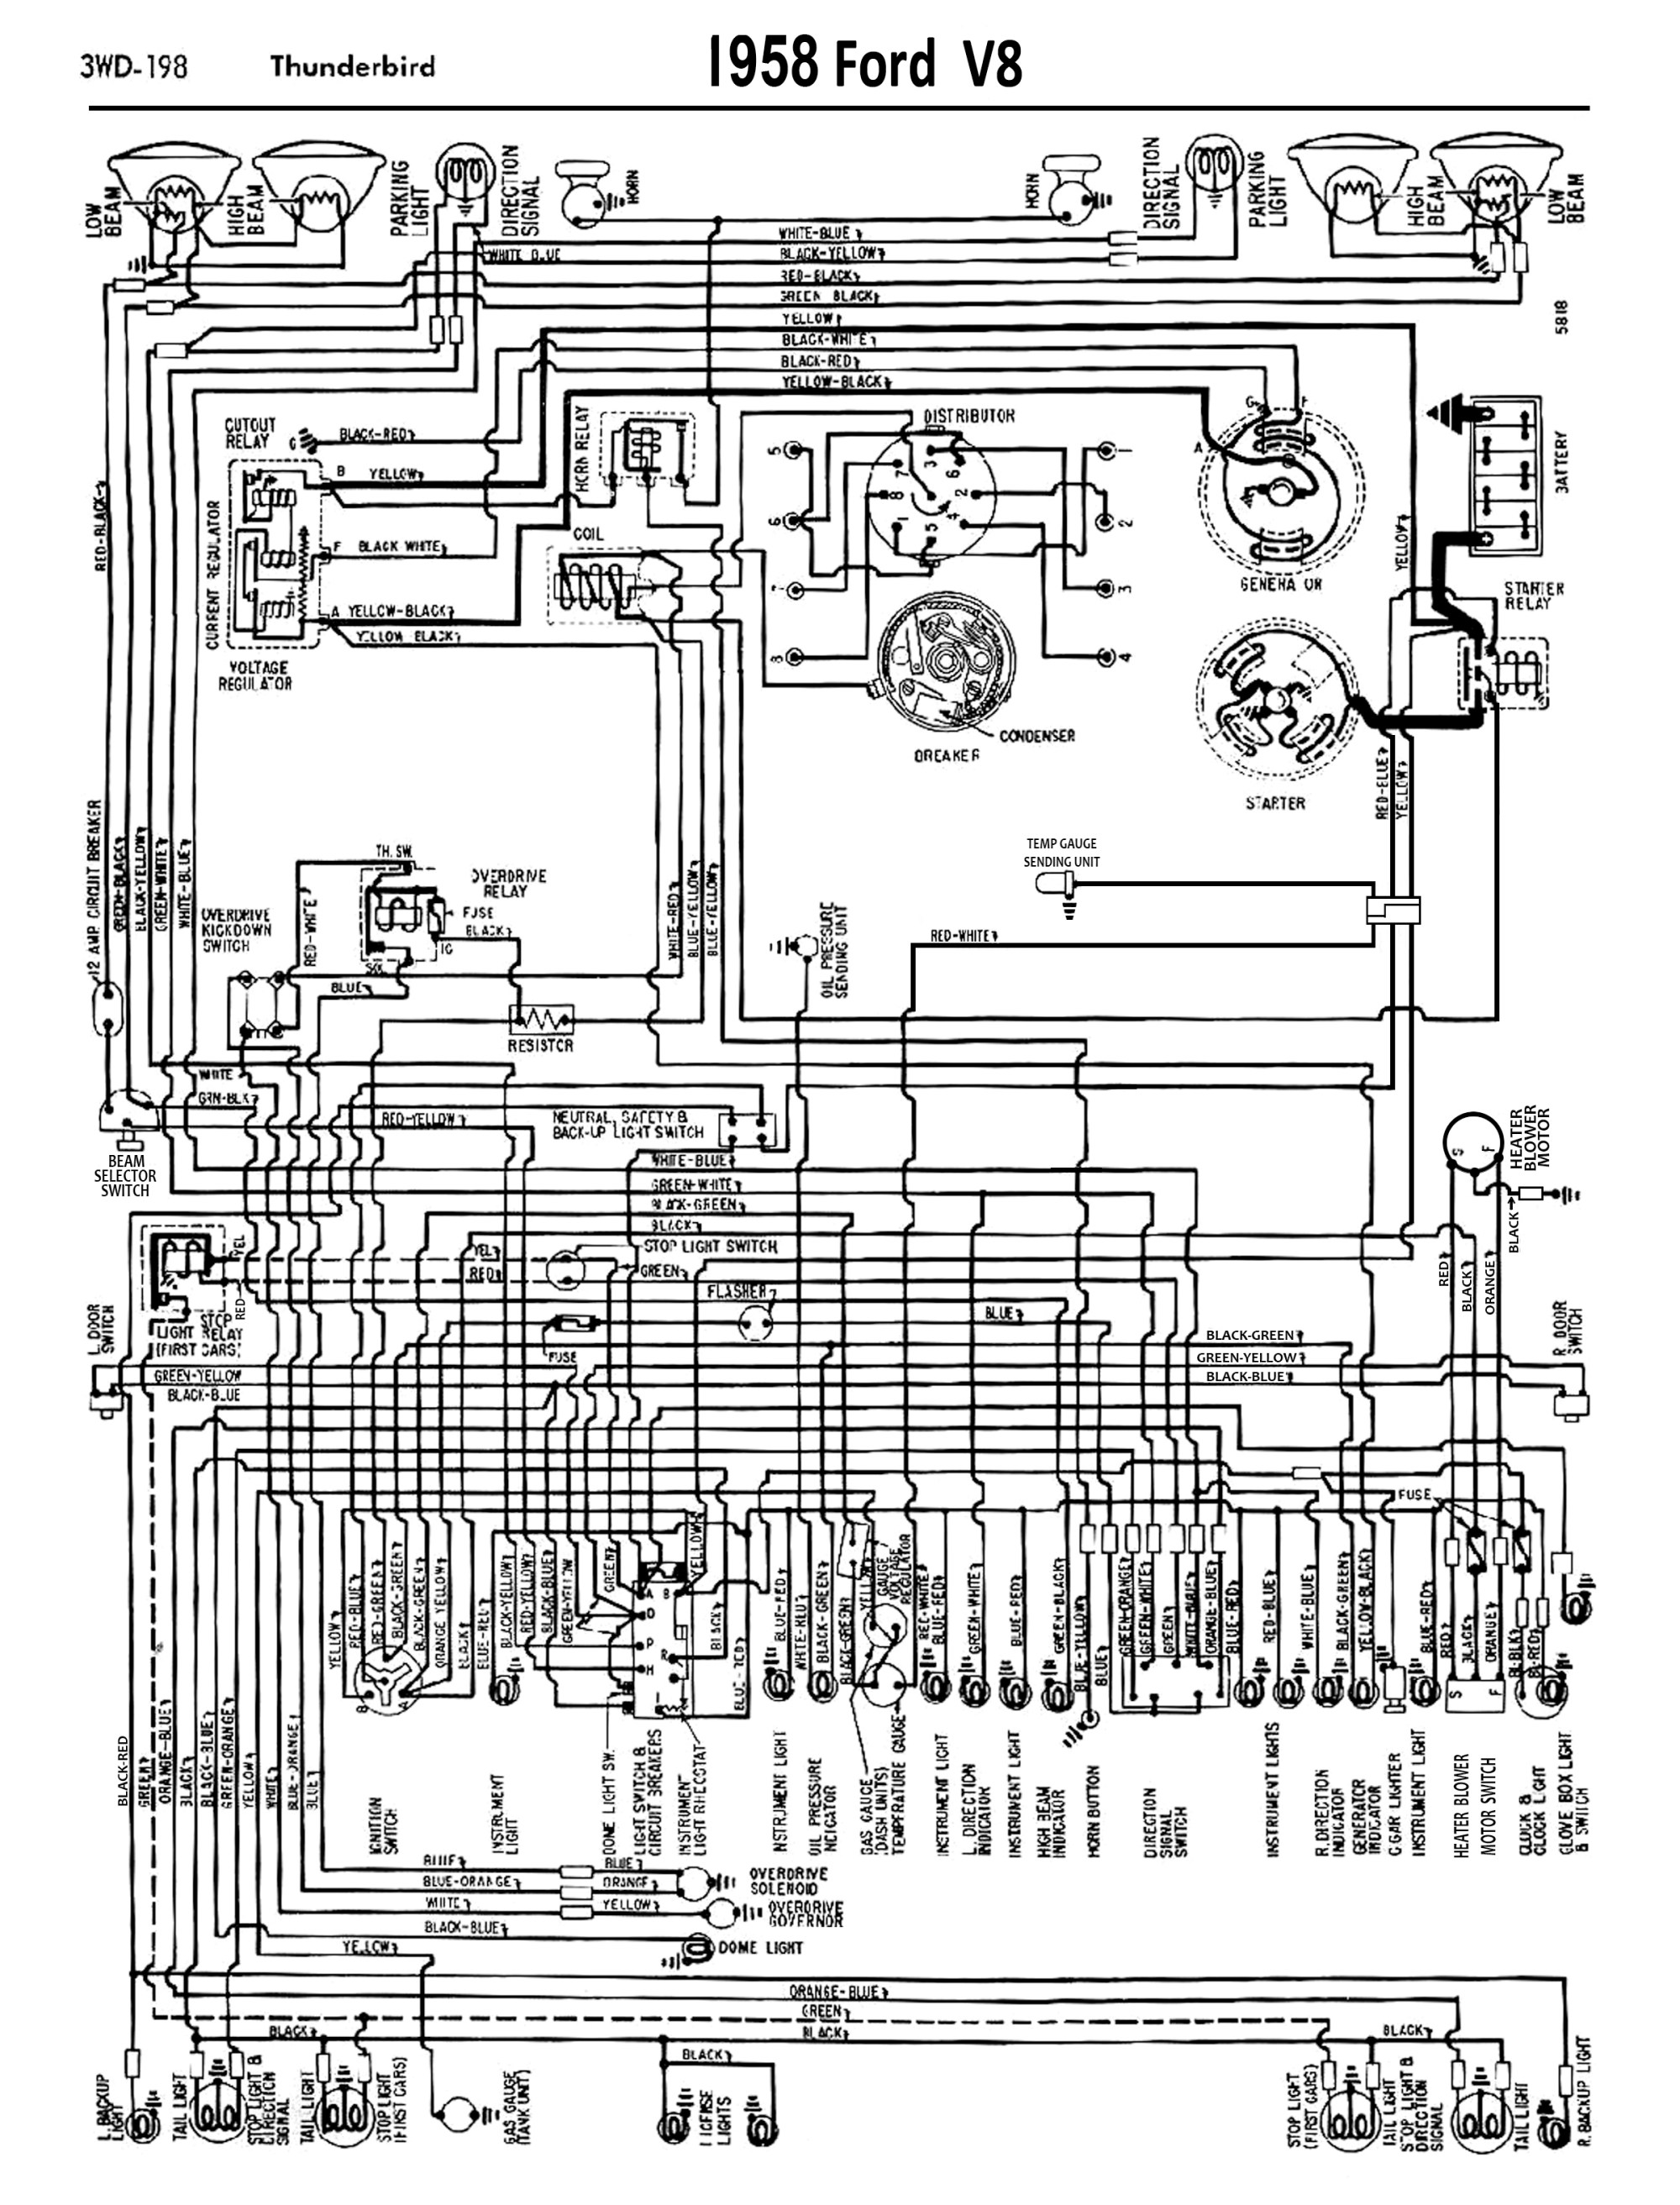 hight resolution of 1958 edsel wiring diagram schematic diagrams rh 1 fitness mit trampolin de 1959 edsel 1958 edsel ranger wiring diagram